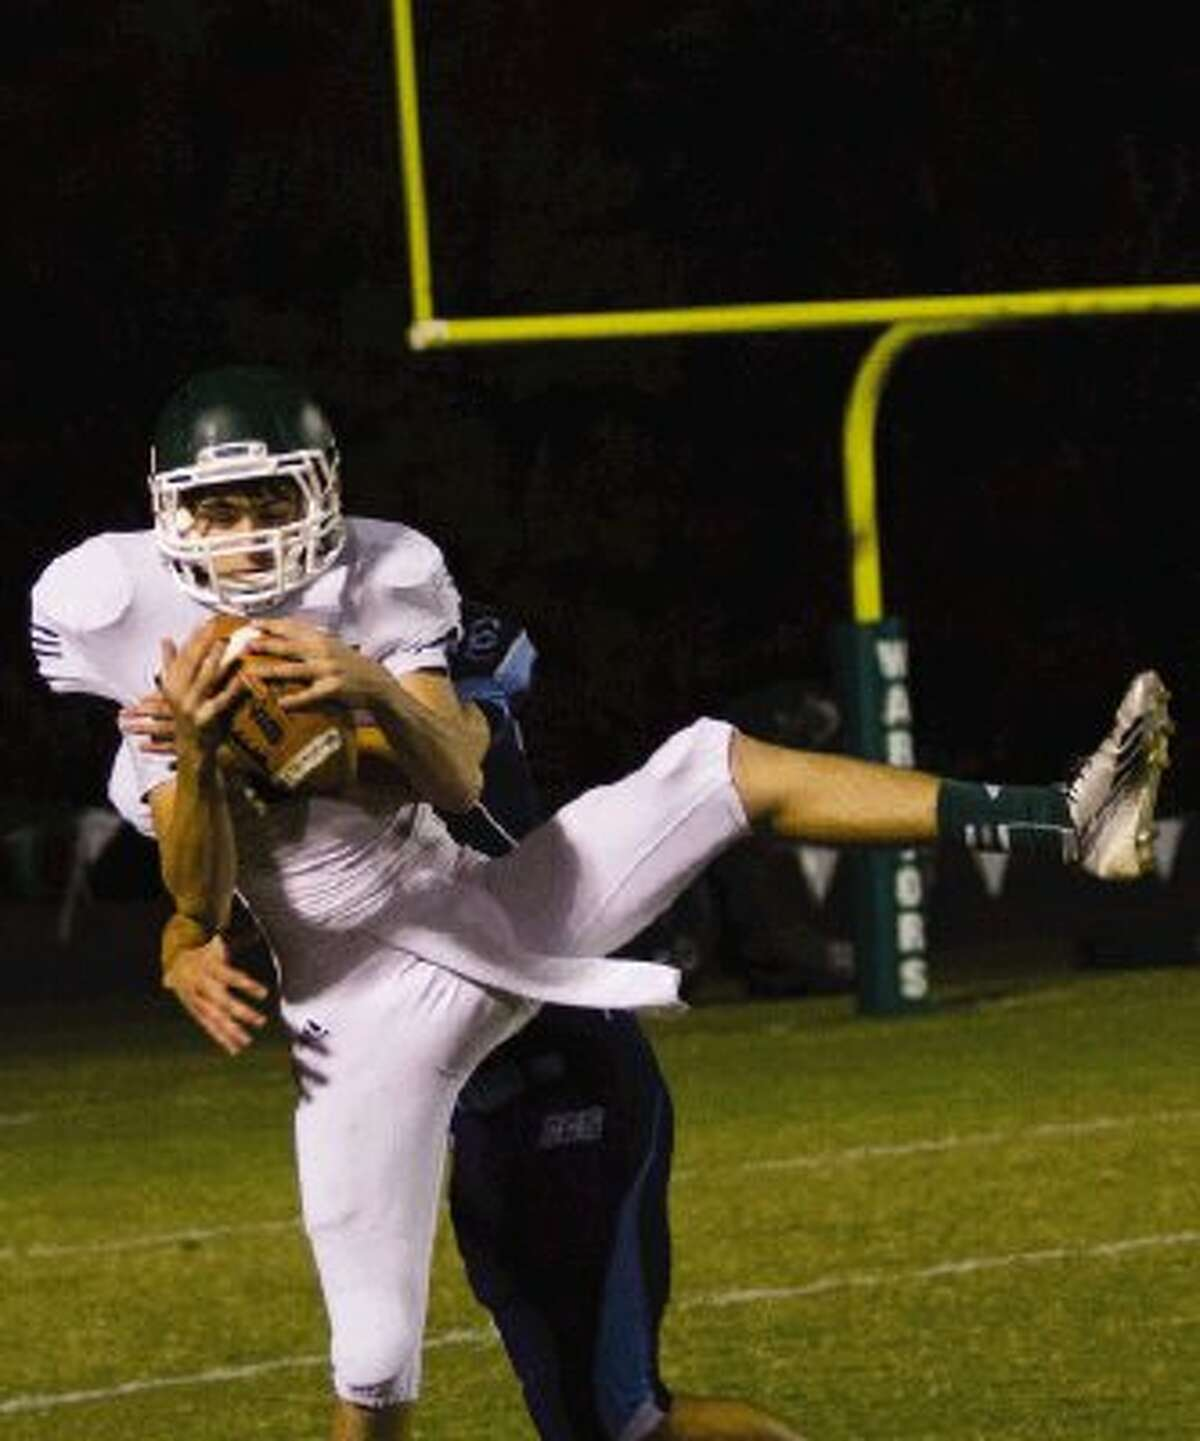 The Woodlands Christian's Calvin Thedinger catches a pass during a game against Cypress Christian on Friday night at The Woodlands Christian Academy. To view or purchase this photo and others like it, visit HCNpics.com.